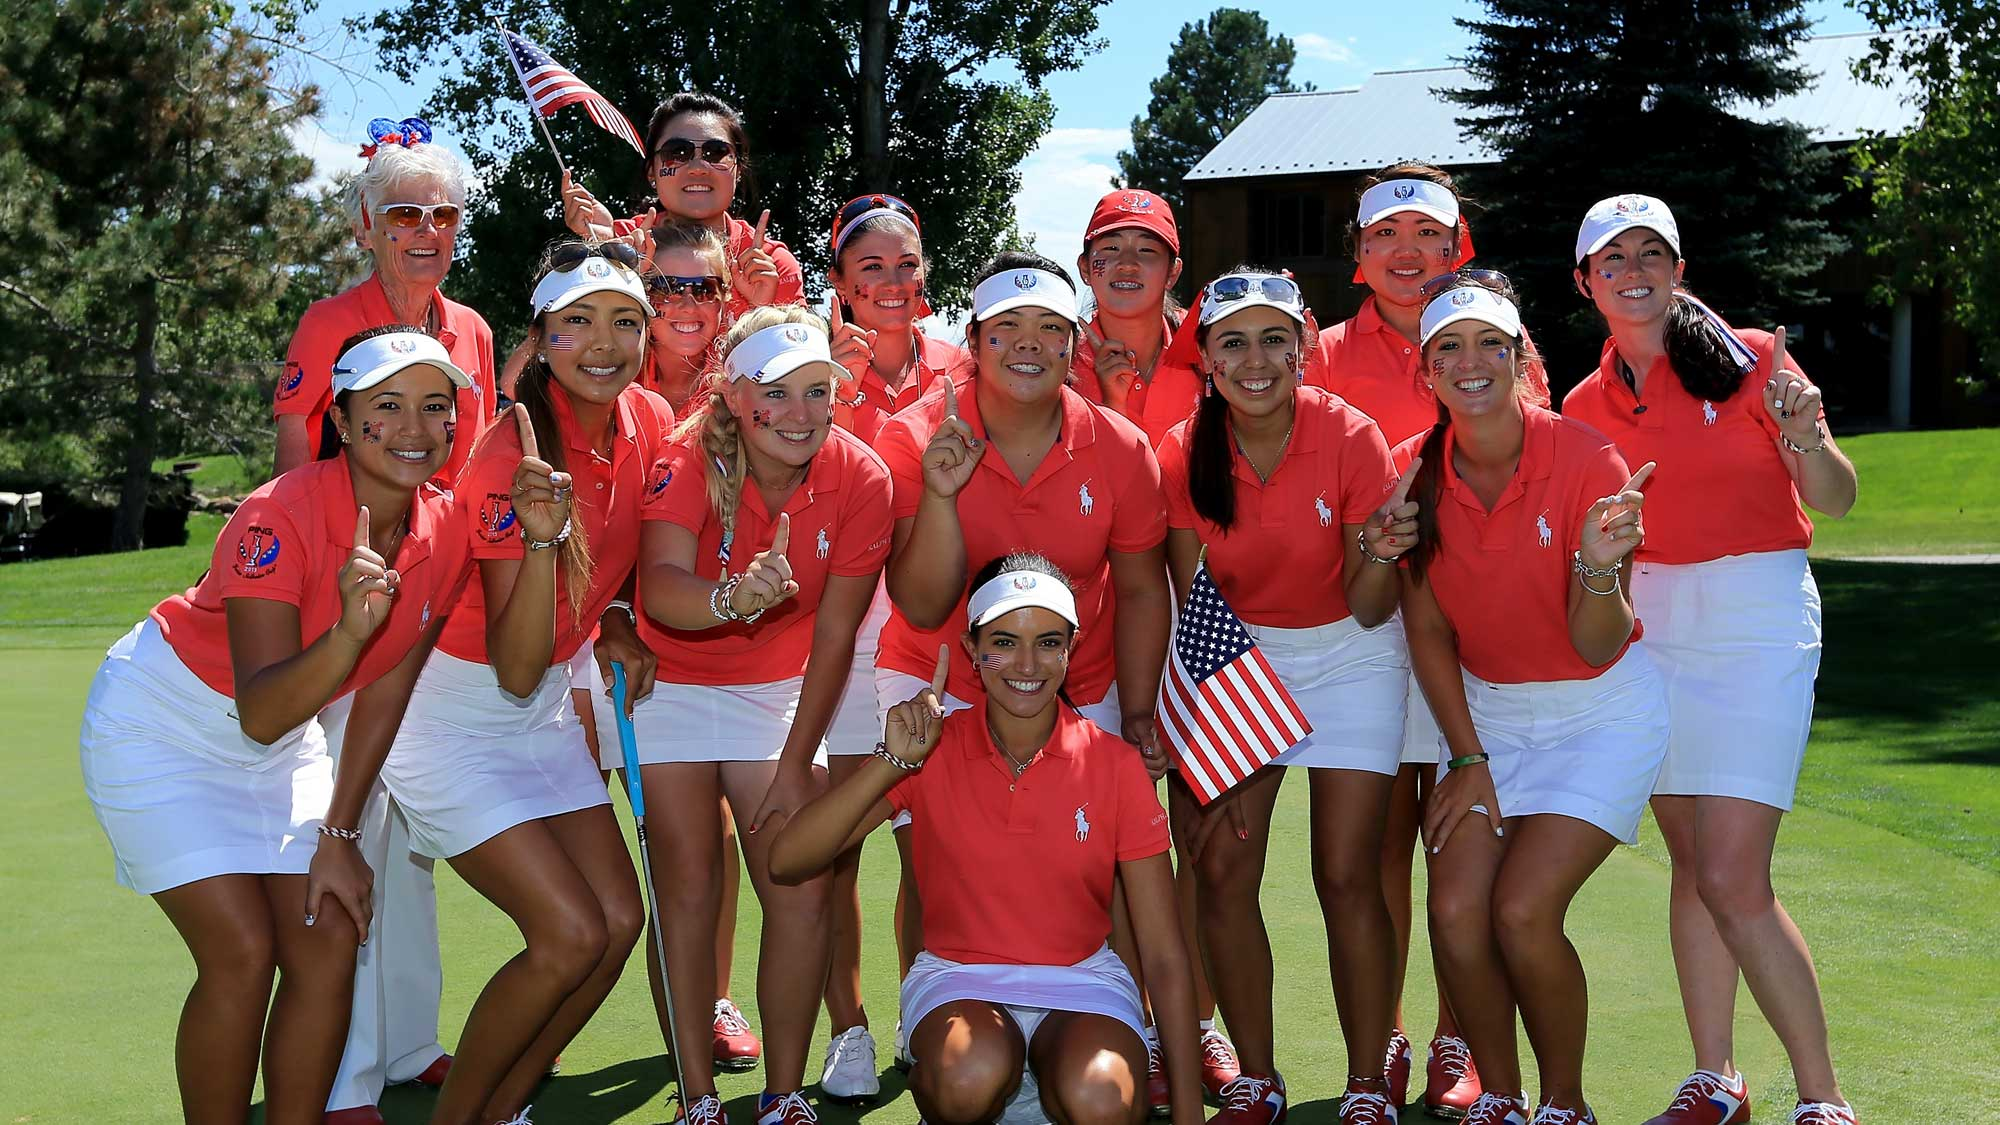 ping junior solheim cup is often fast track to solheim cup